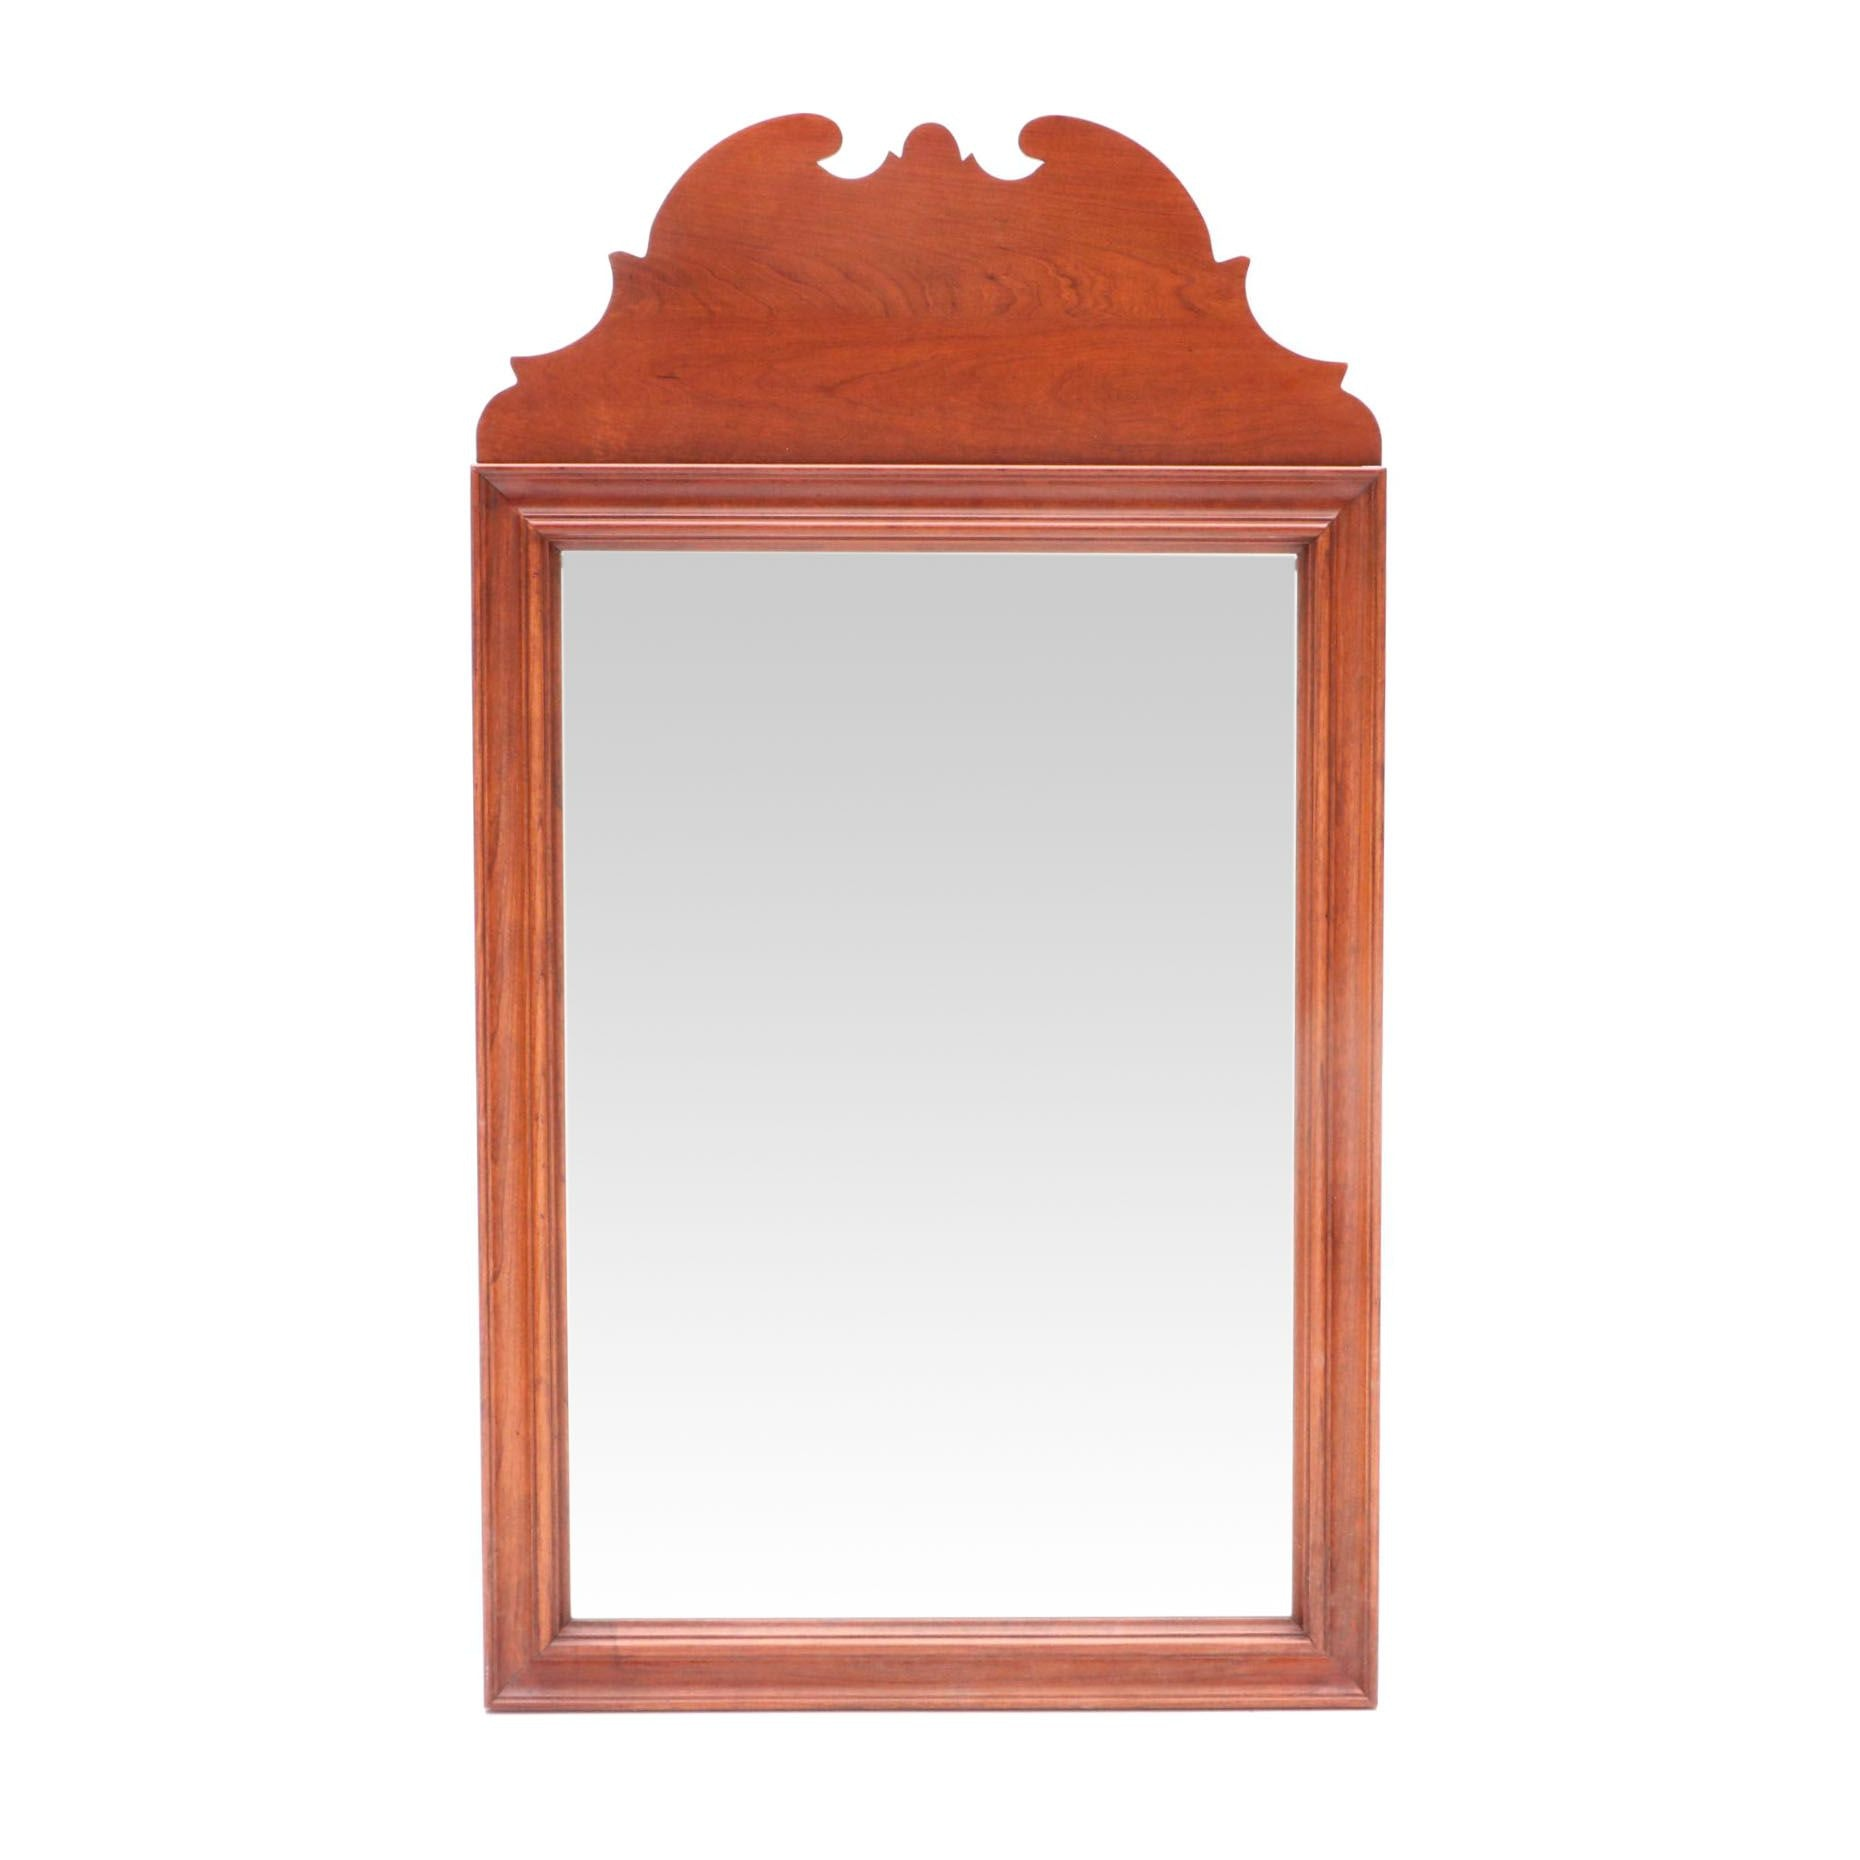 Federal Style Wall Mirror by Lexington in Cherry